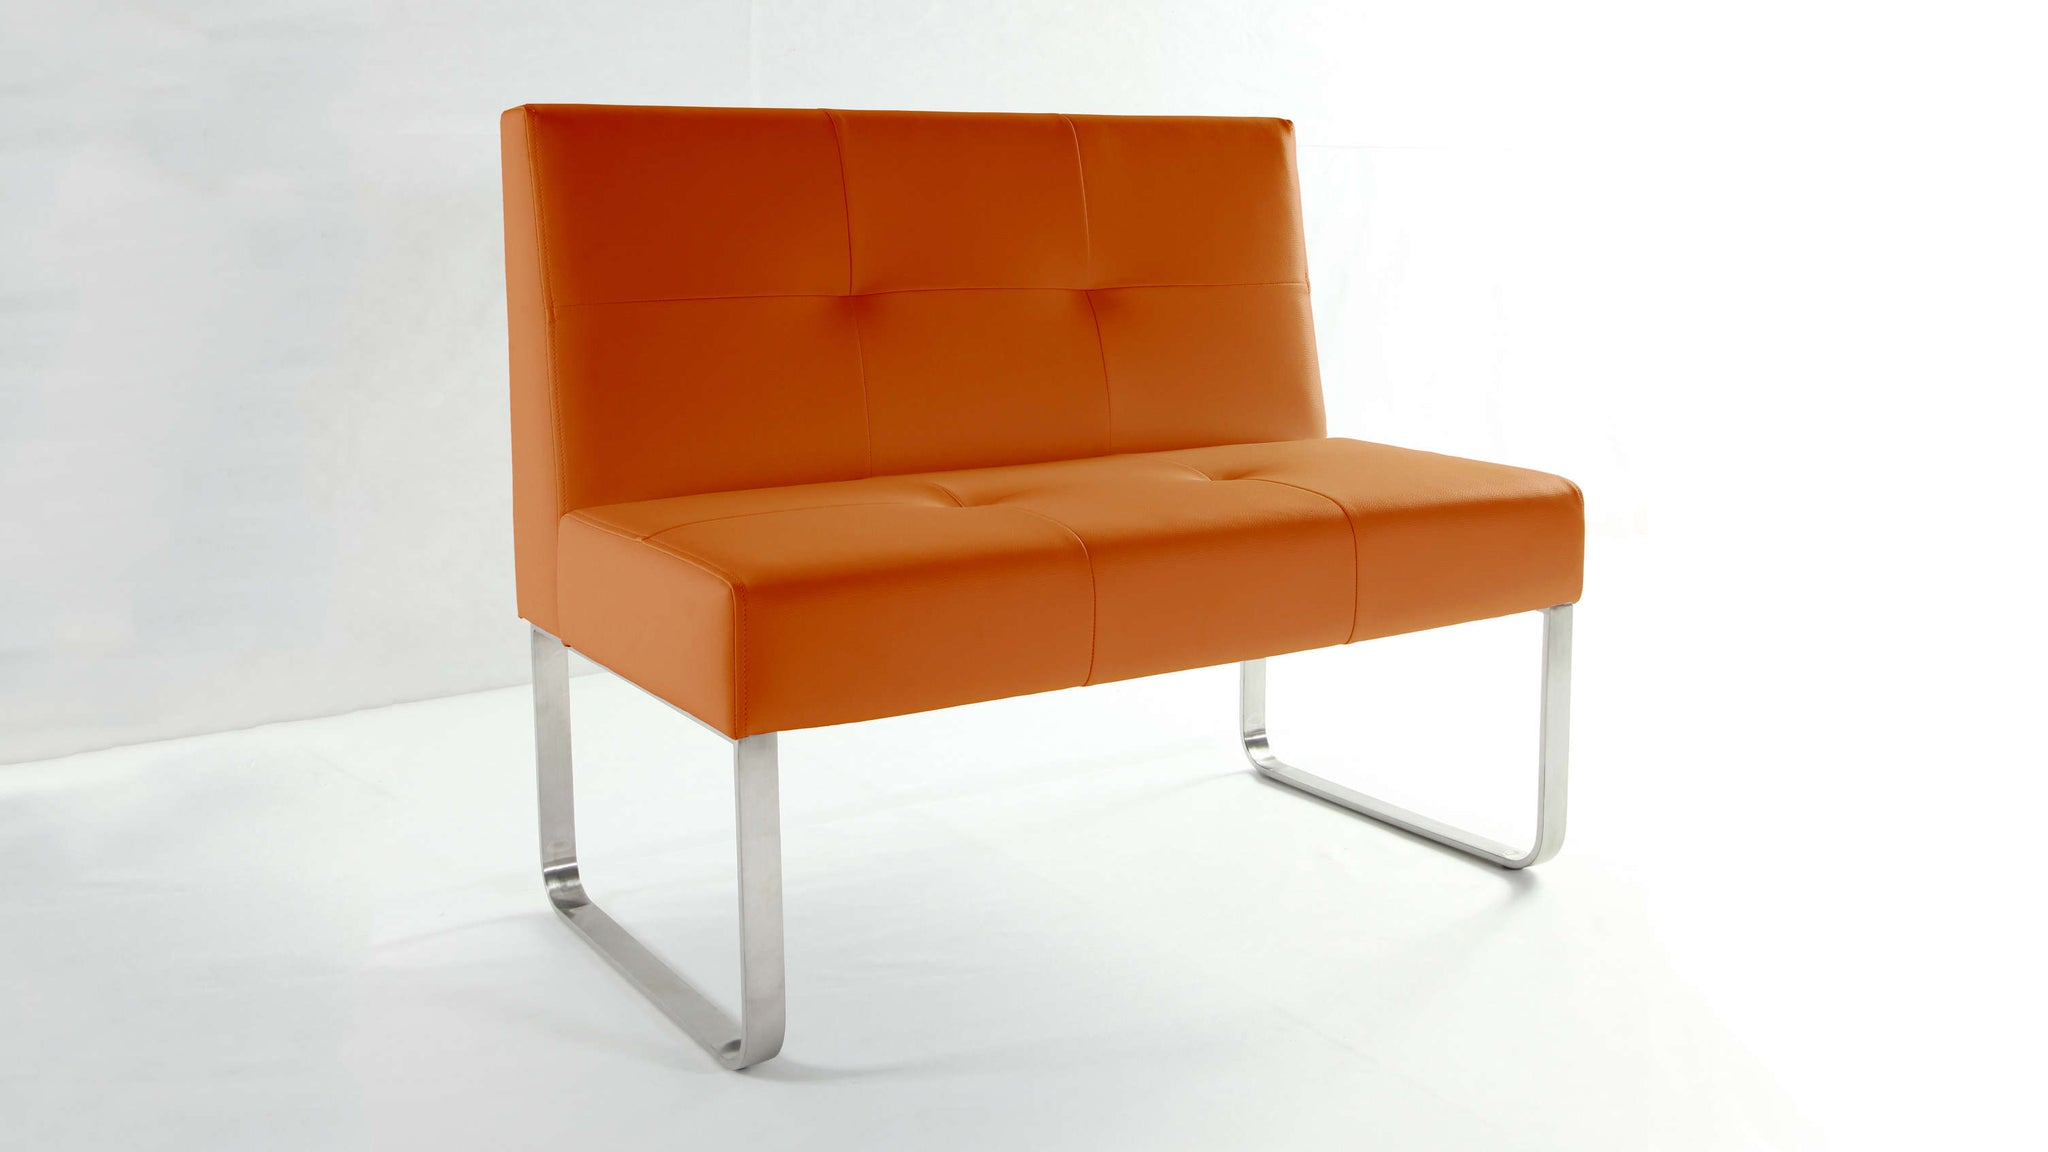 Stylish Orange Dining Bench